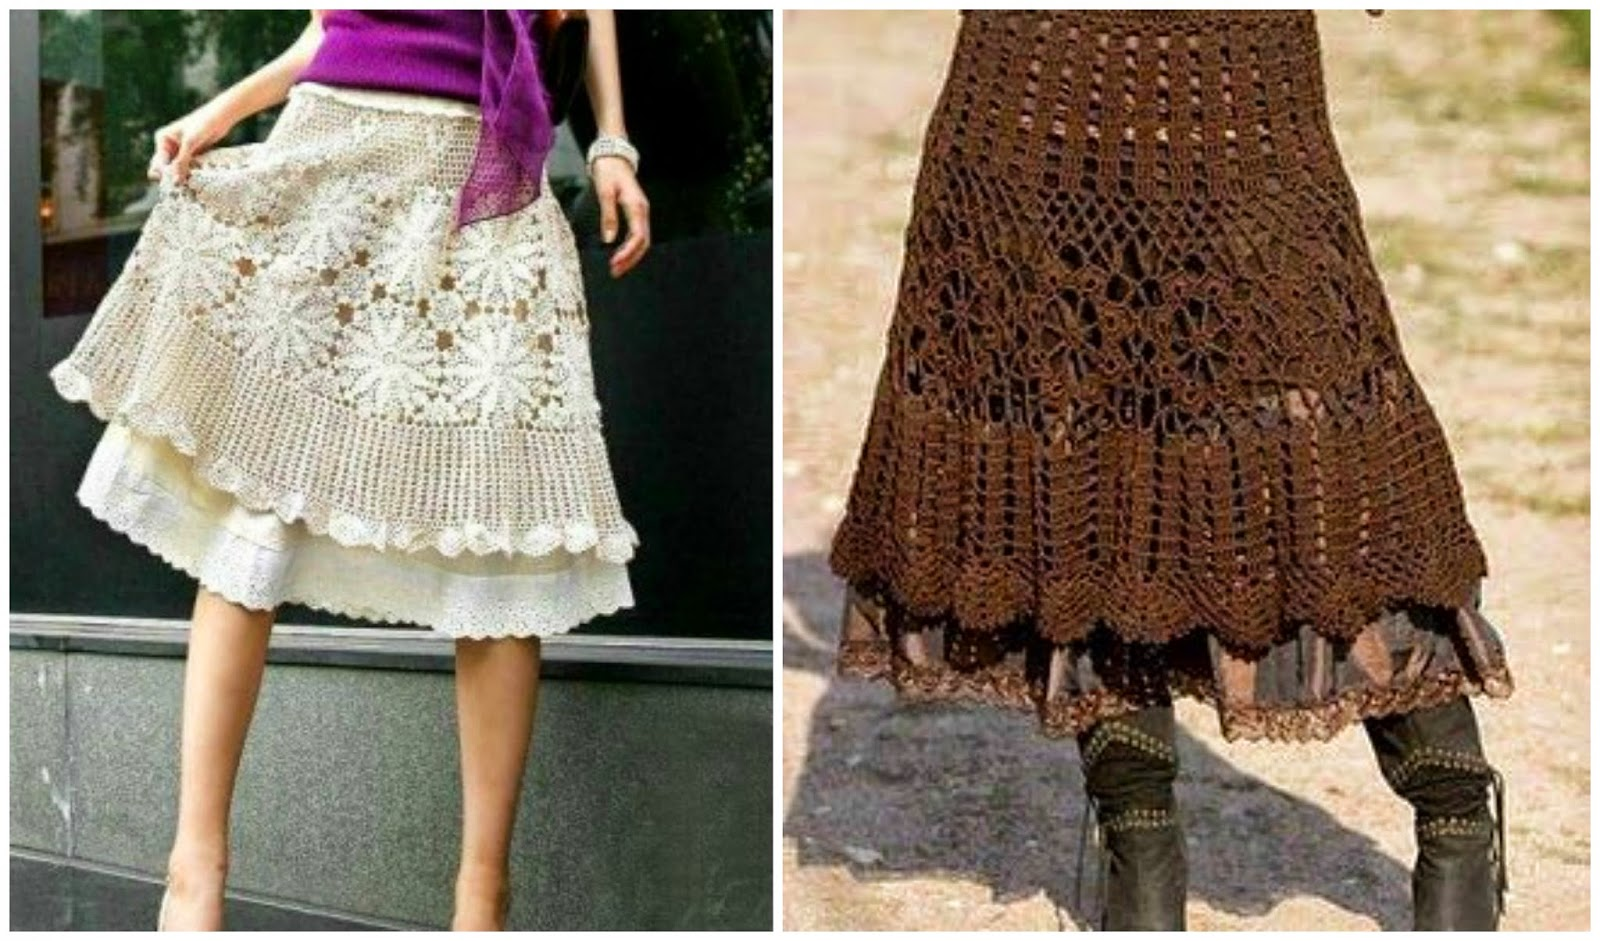 Crochet Patterns Skirt : Skirt 5 Skirt 6